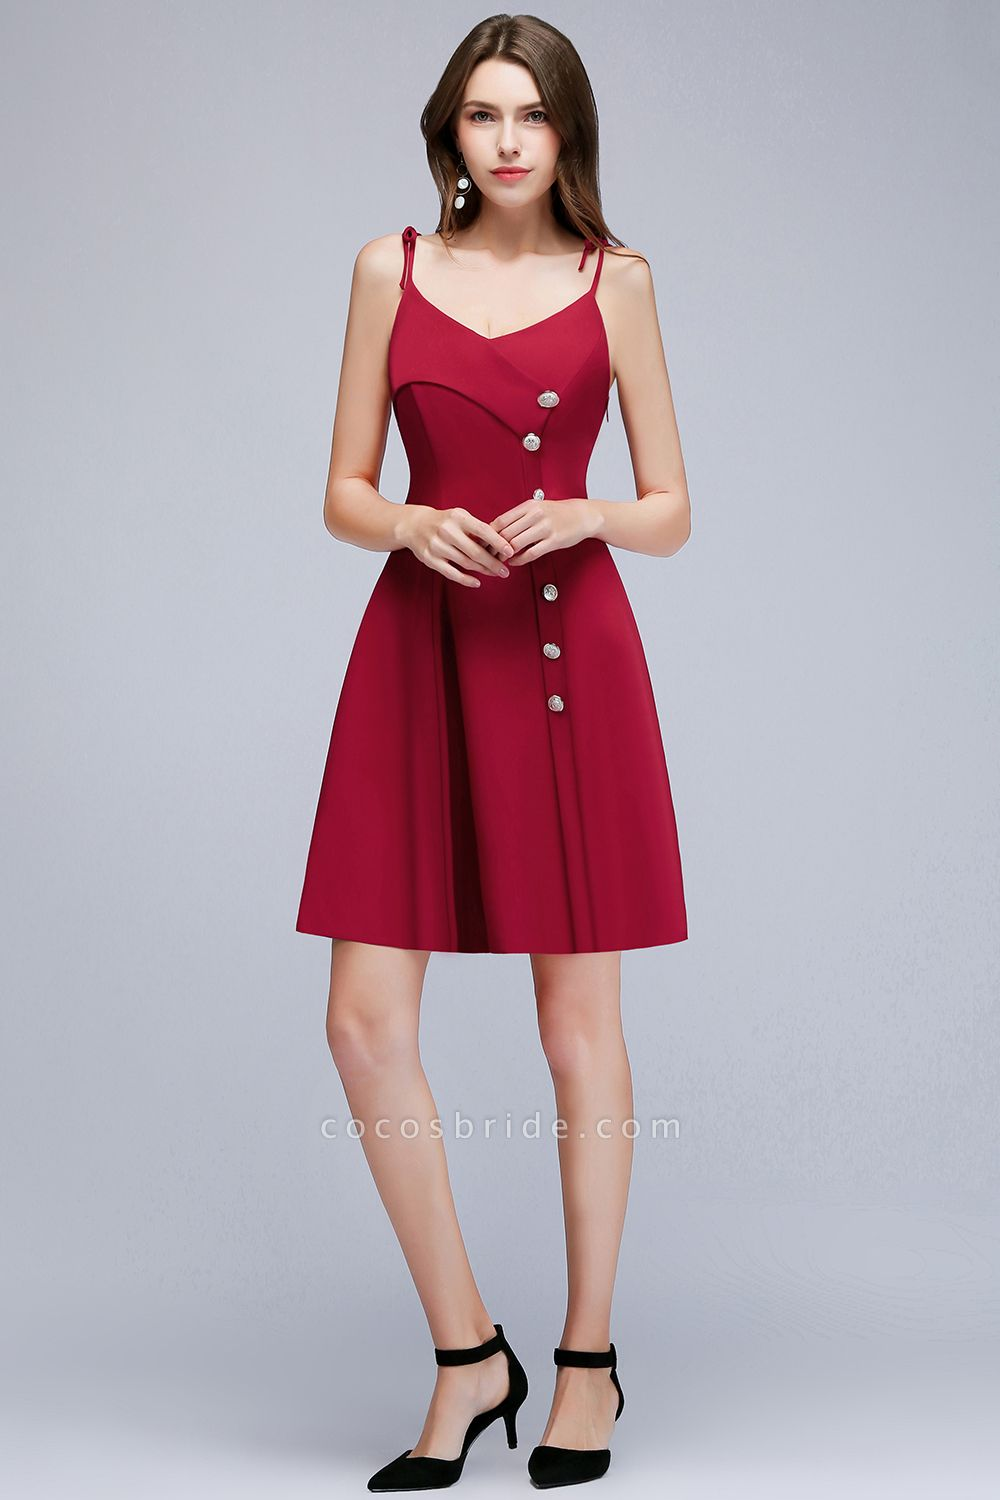 MALVINA   A-line Short V-neck Spaghetti Burgundy Homecoming Dresses with Buttons